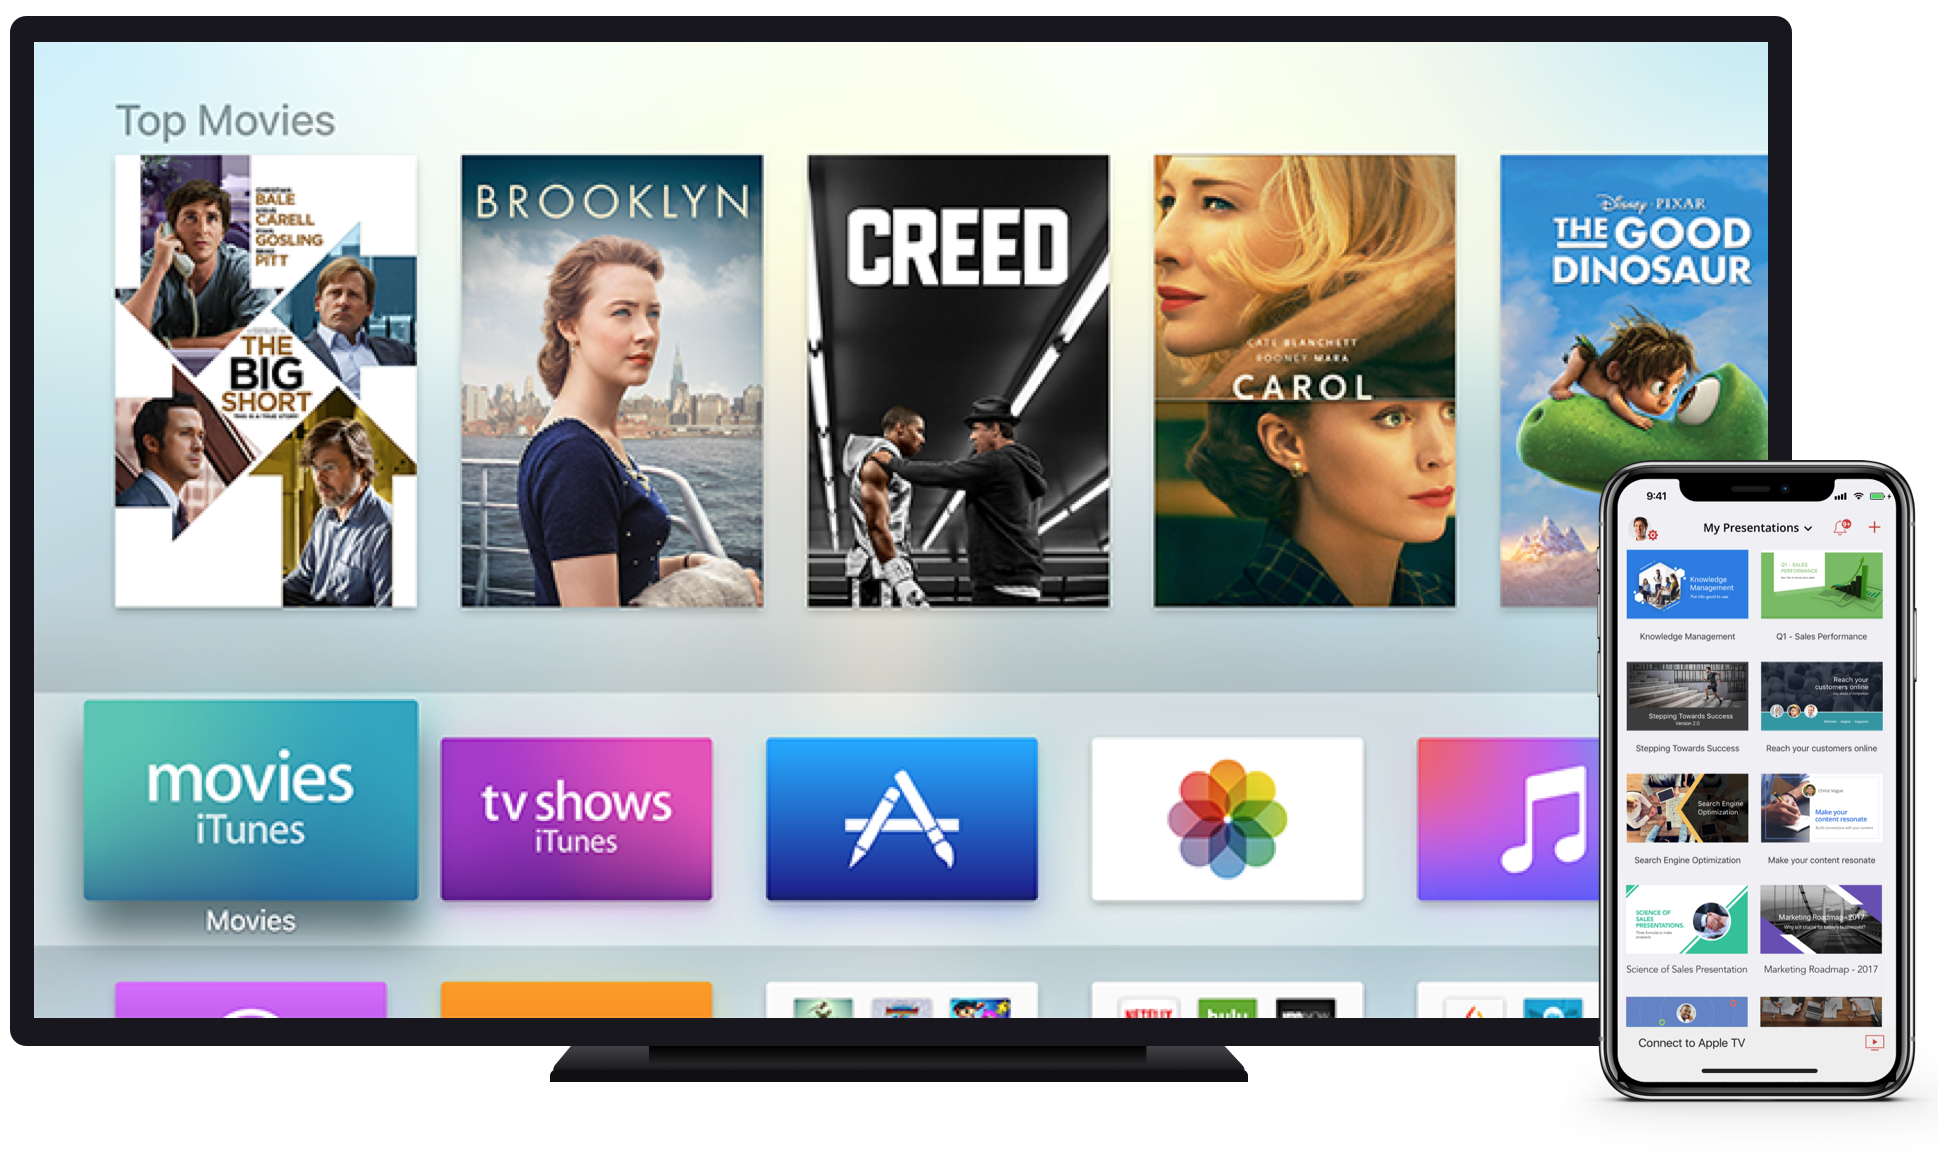 How to present slides on Apple TV using Airplay?